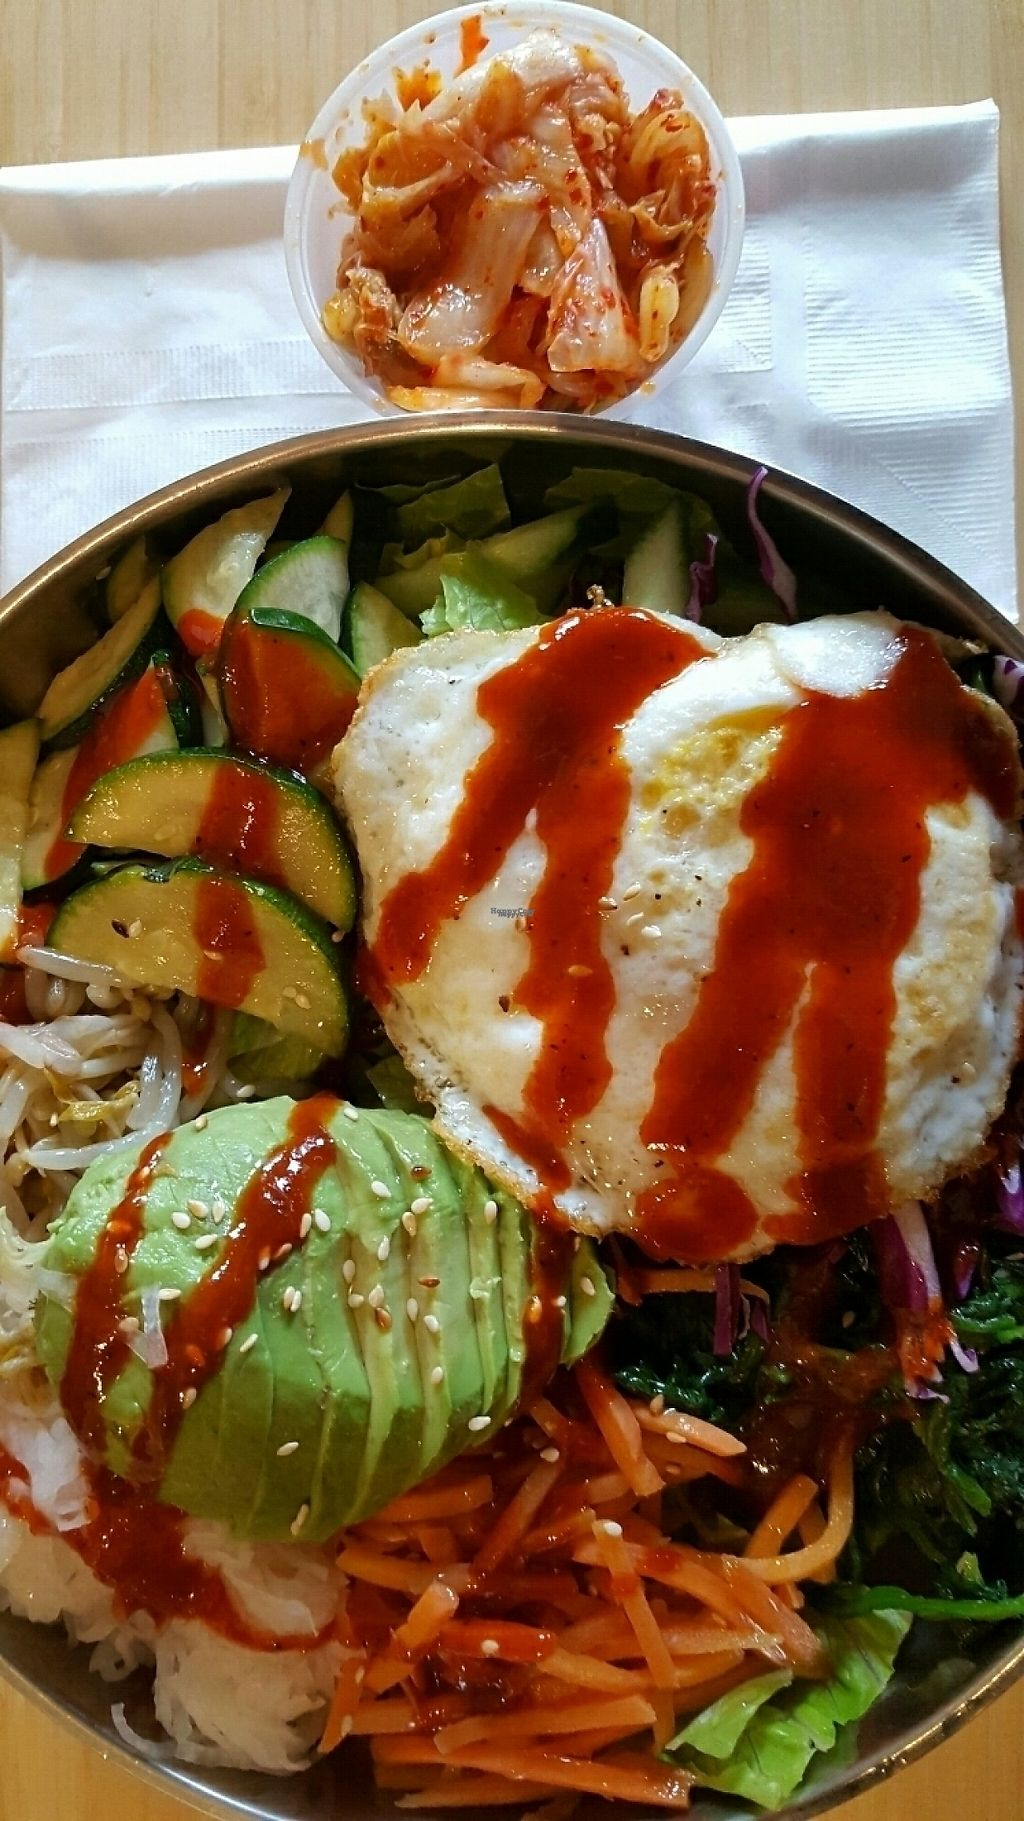 """Photo of Rice Junkies - Downtown  by <a href=""""/members/profile/missmaryxjane"""">missmaryxjane</a> <br/>bibimbab bowl with side of kimchi (has egg) <br/> March 25, 2017  - <a href='/contact/abuse/image/75770/240459'>Report</a>"""